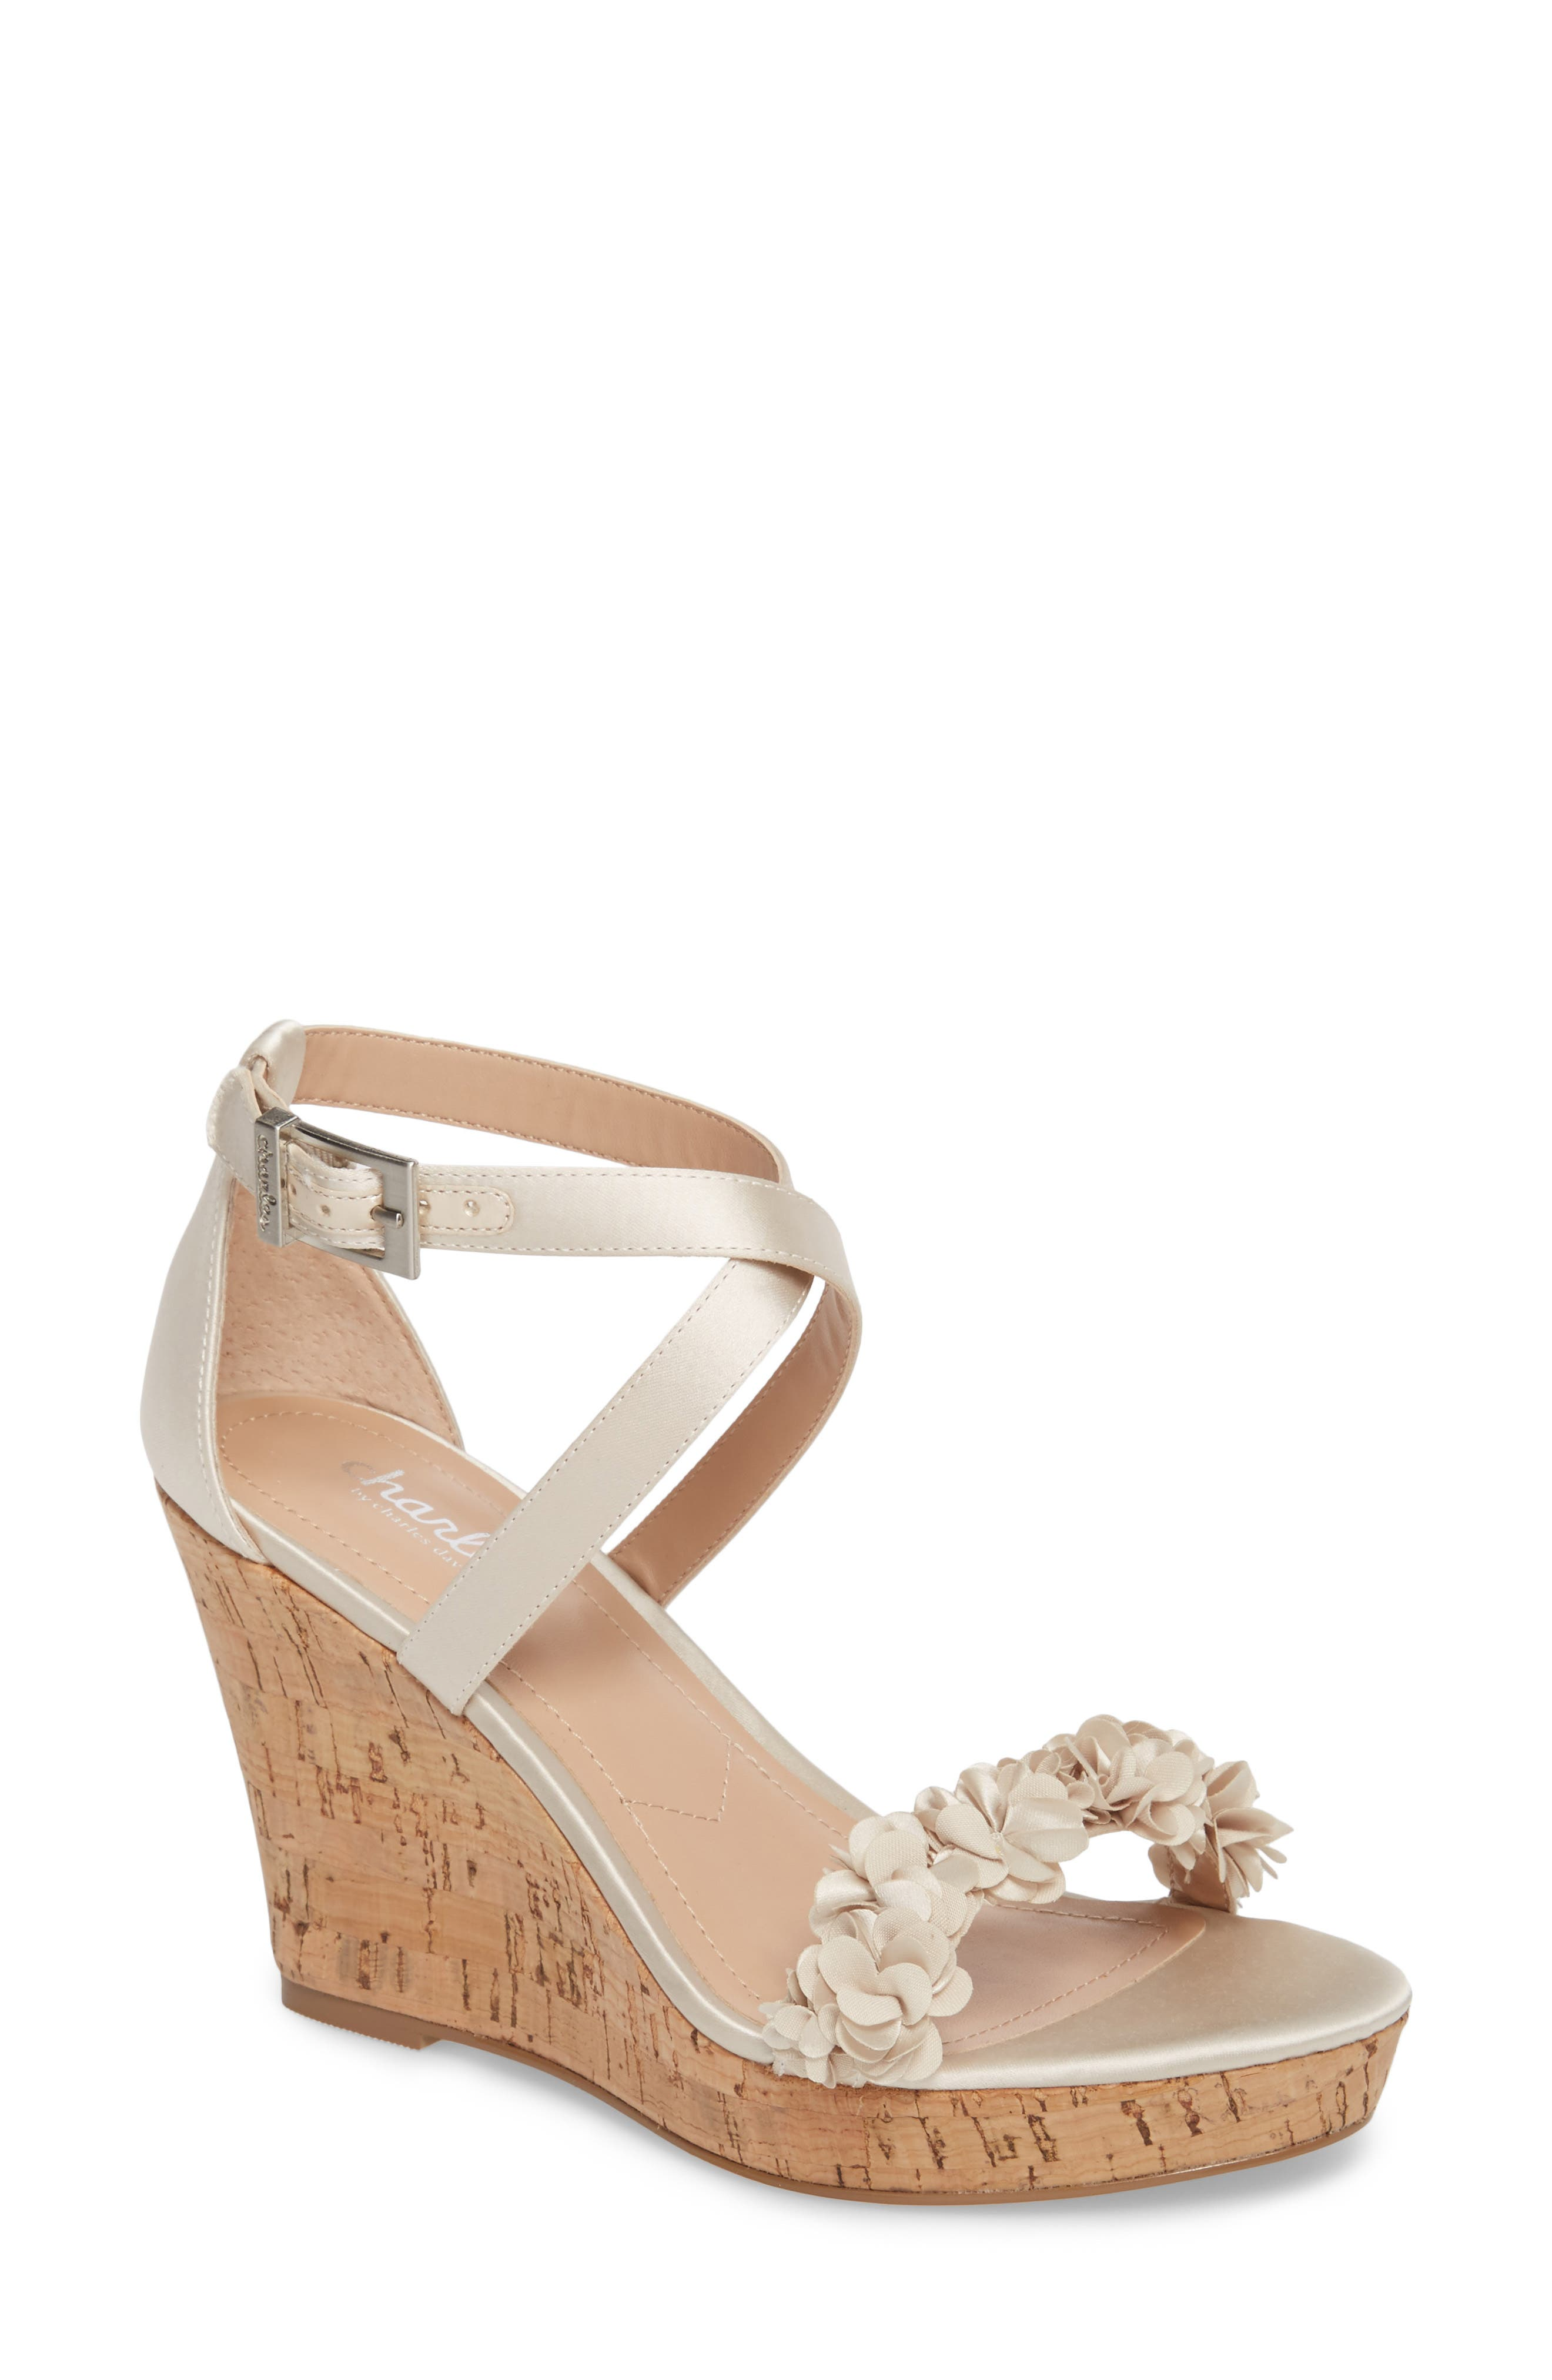 Lauryn Wedge Sandal,                         Main,                         color, Ivory Satin